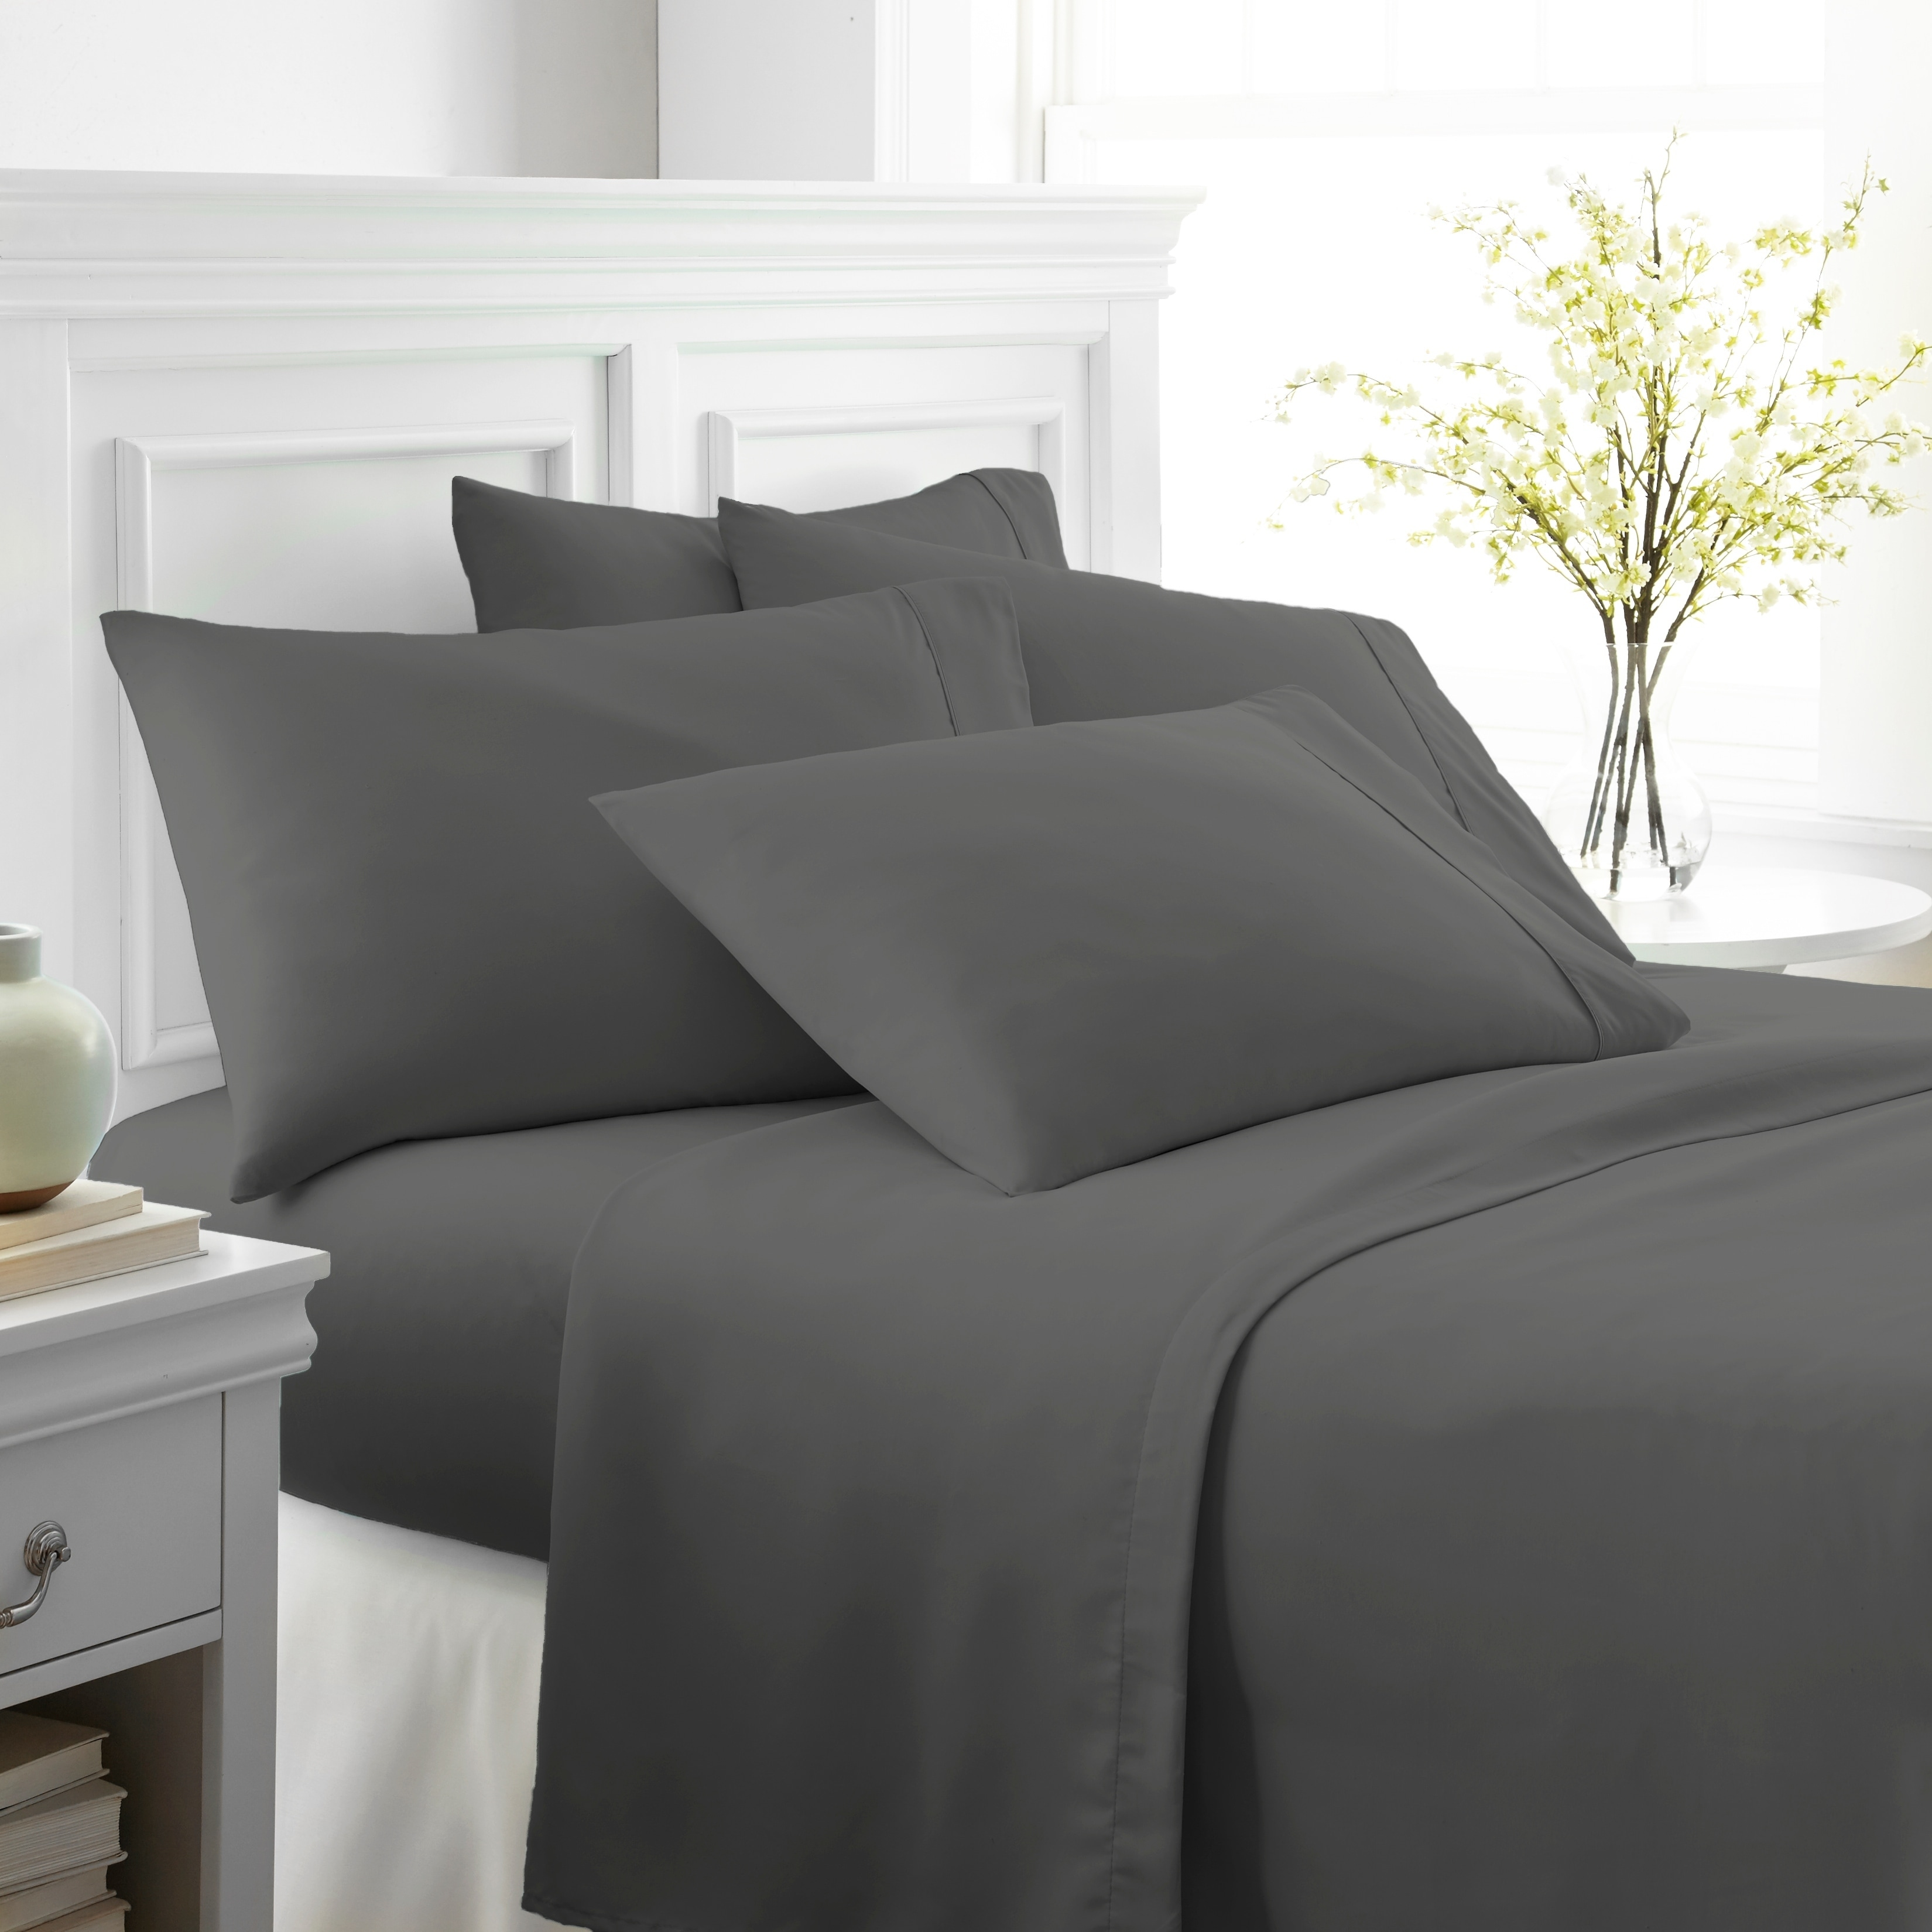 Shop Merit Linens Ultra Soft 6 Piece Bed Sheet Set   On Sale   Free  Shipping On Orders Over $45   Overstock.com   10529098